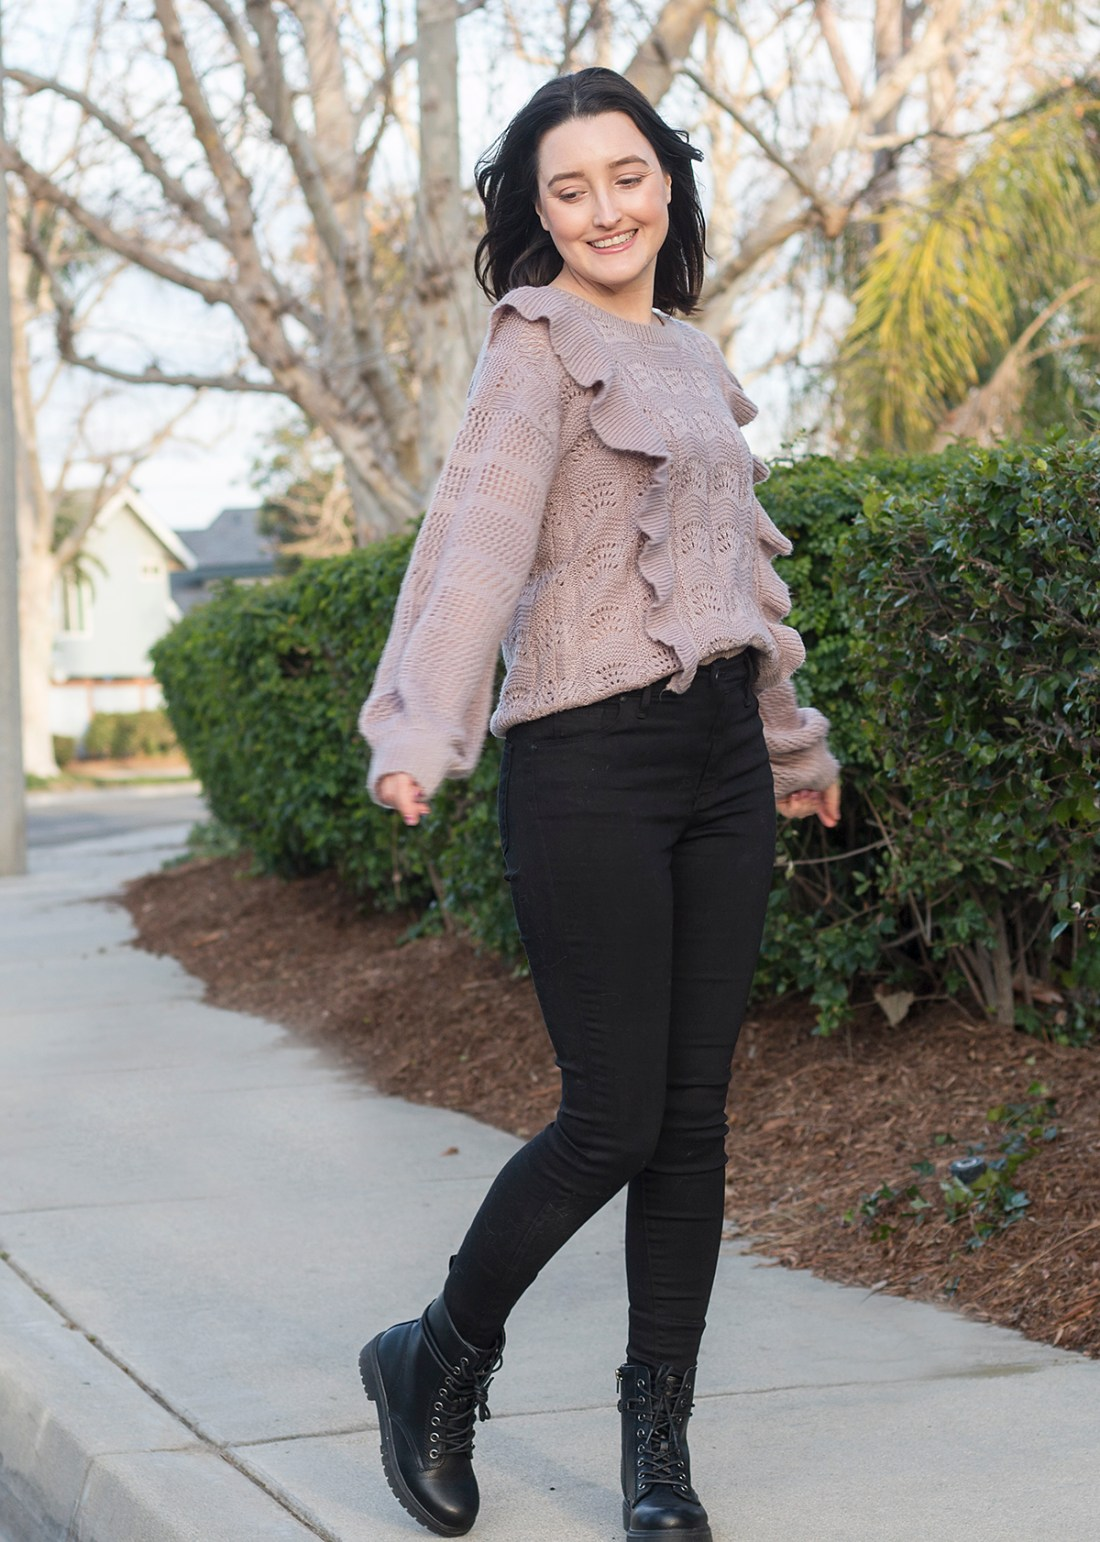 Winter Style: Ruffled Sweater | A Good Hue